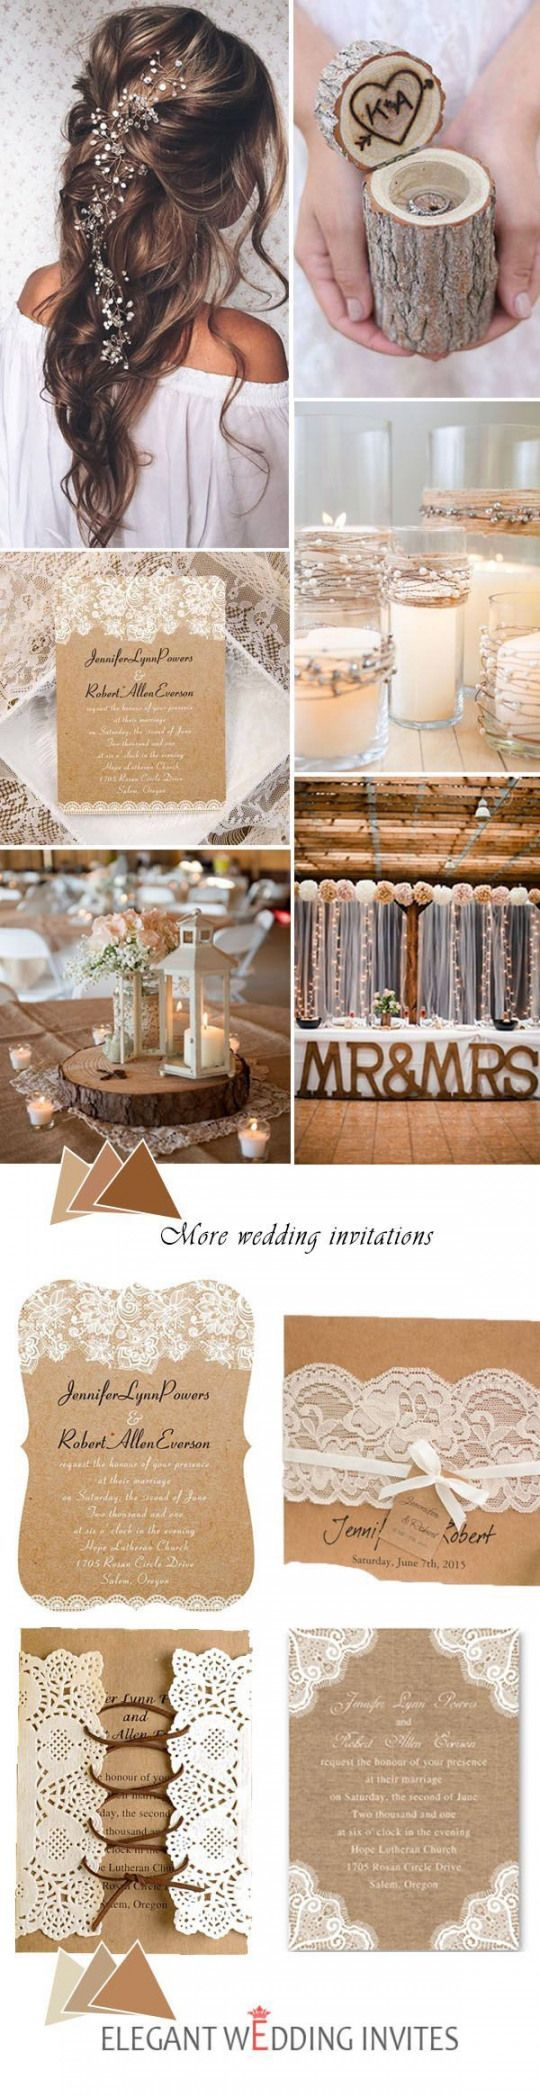 country wedding ideas with vintage lace and burlap #weddinghairstyles #country #wedding #hairstyles - #burlap